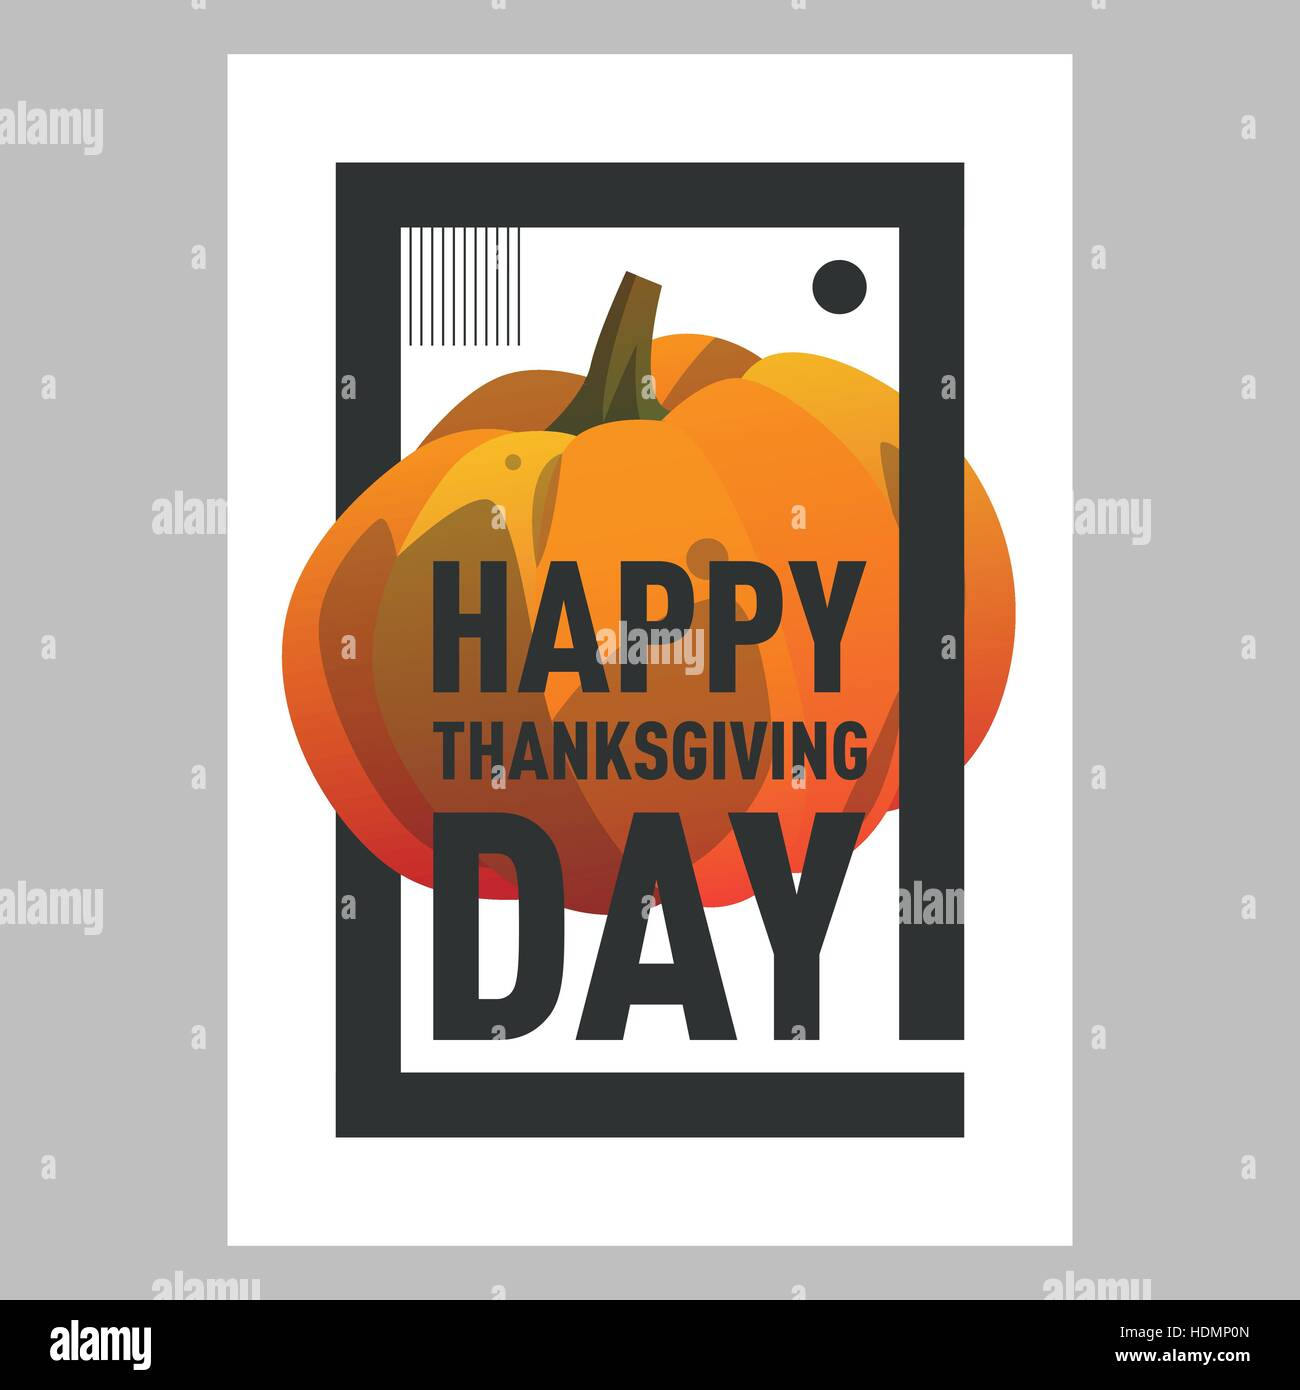 Happy Thanksgiving Day Postcard Template With Pumpkin. Modern Postcard  Cartoon Style With Gradient. Autumn Holiday Postca